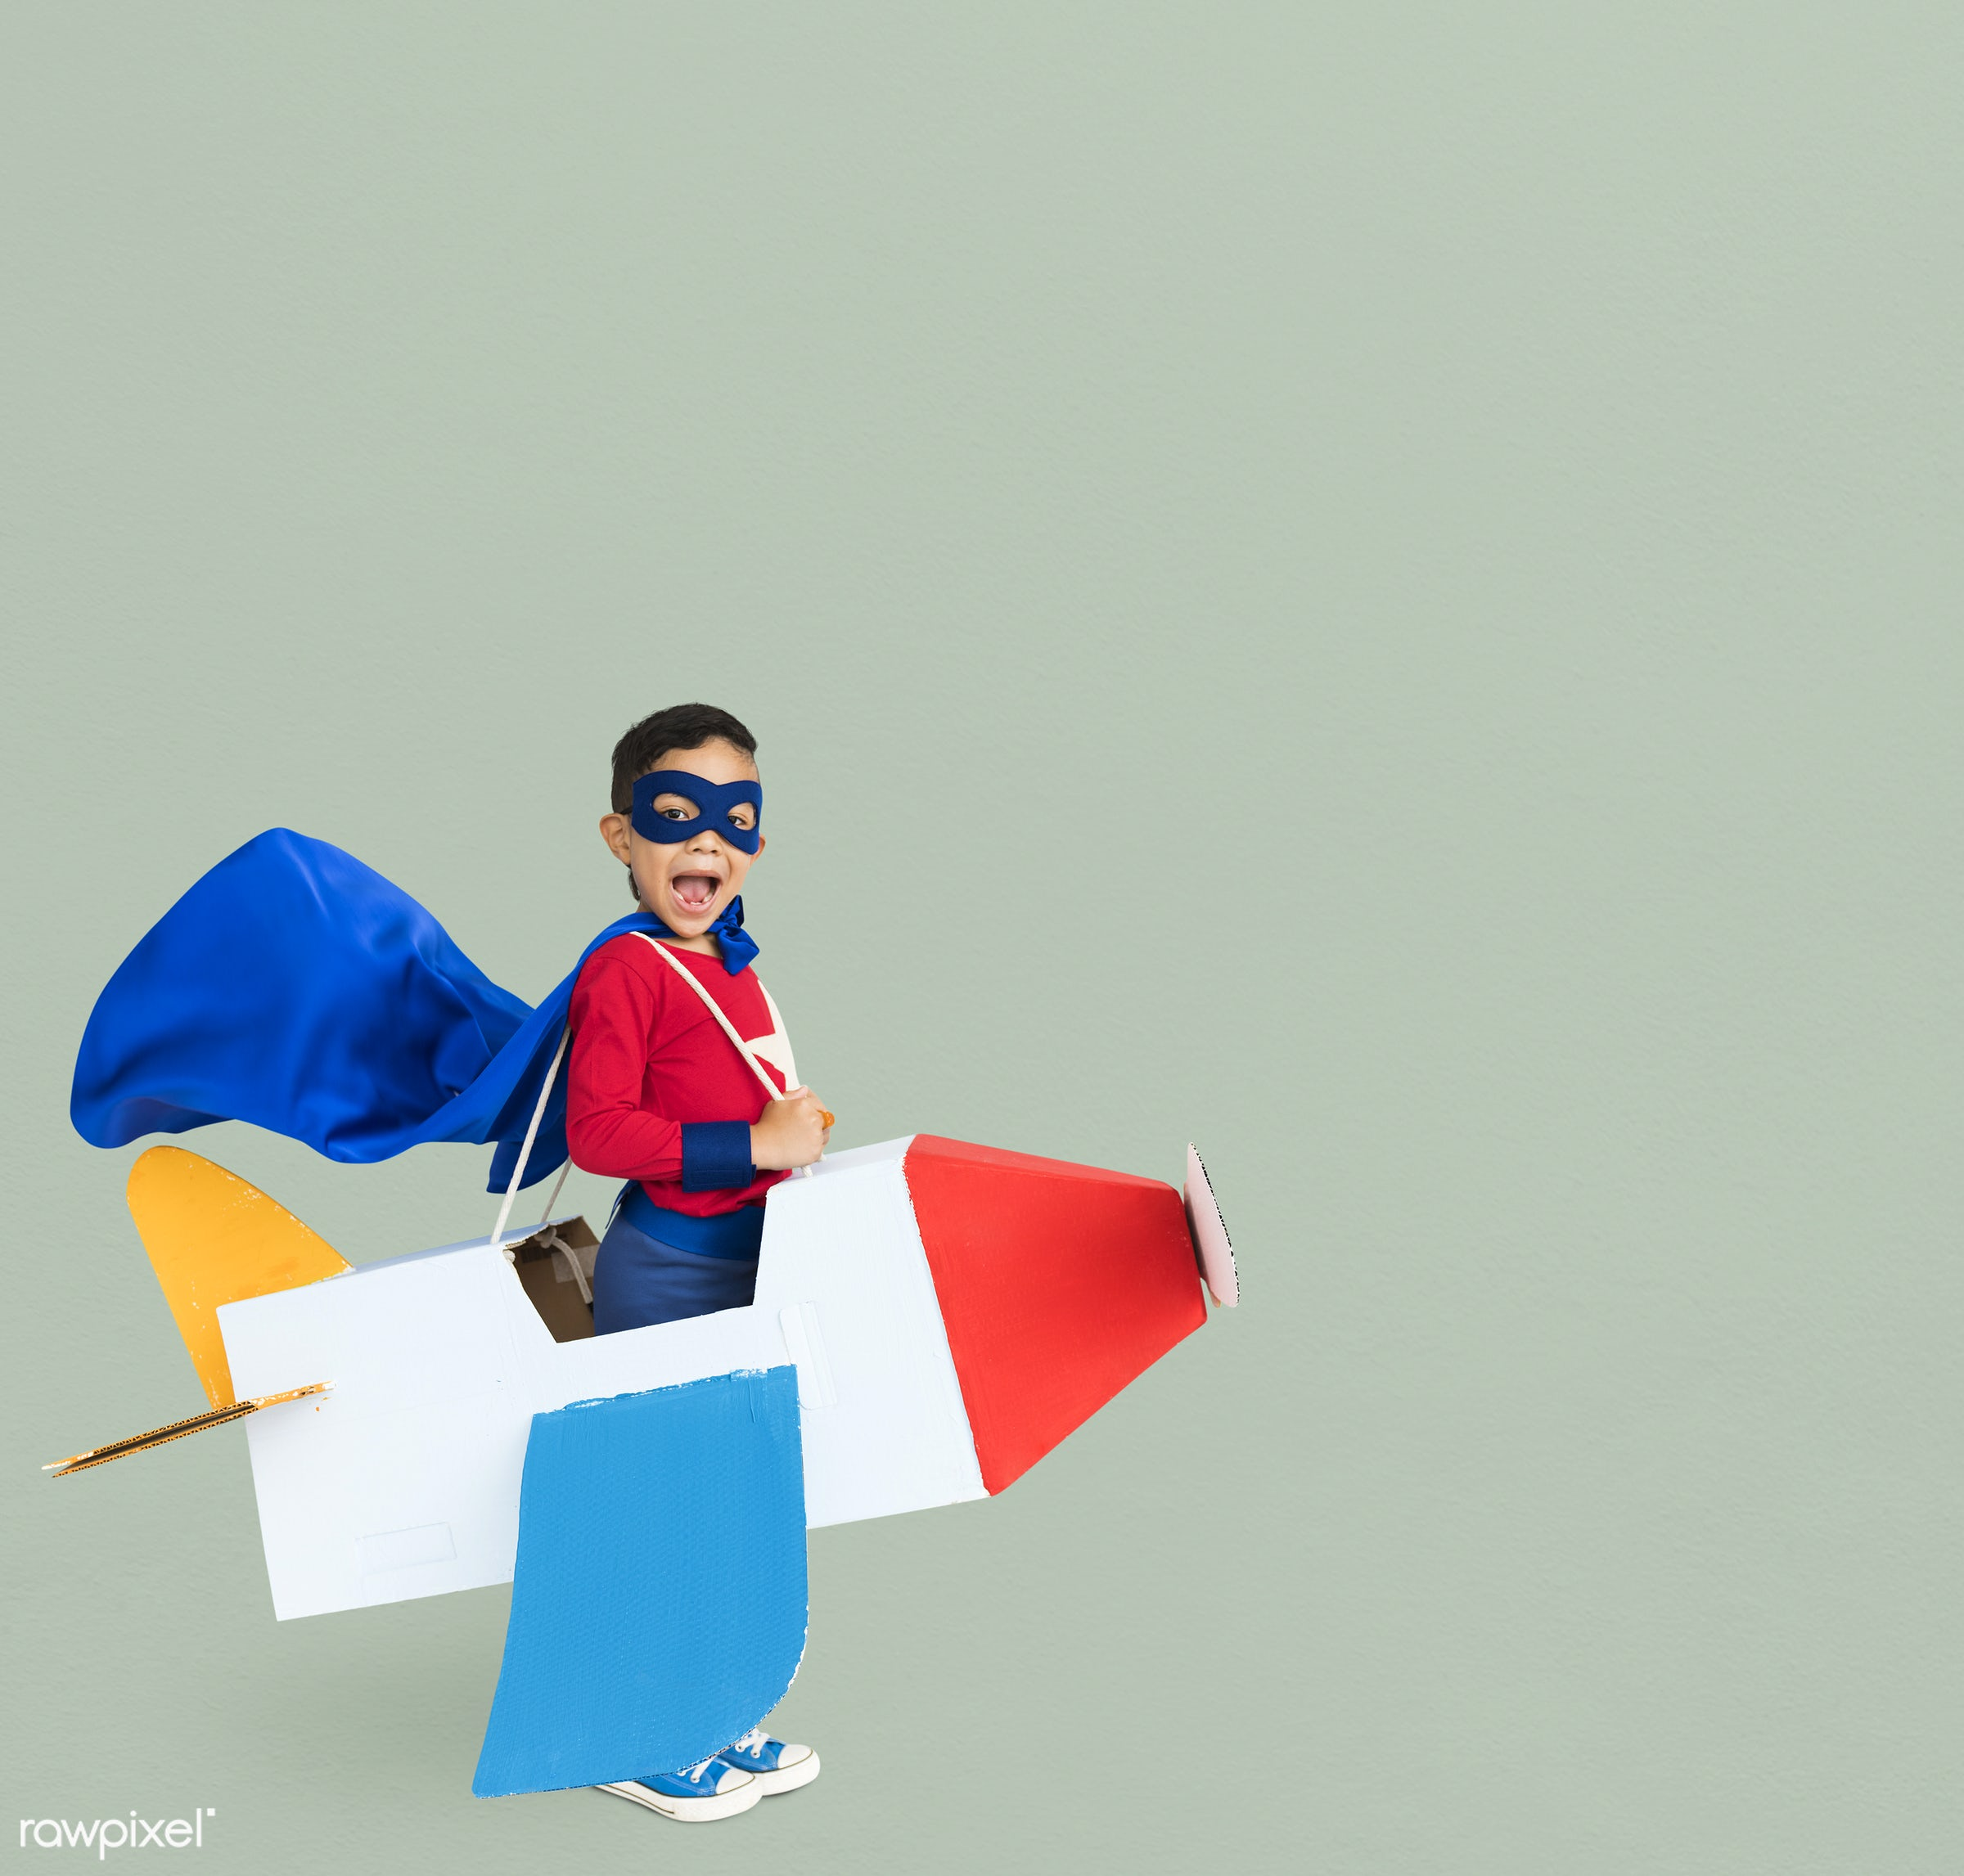 studio, expression, person, mask, people, kid, solo, childhood, smile, cheerful, smiling, isolated, airplane, happiness,...